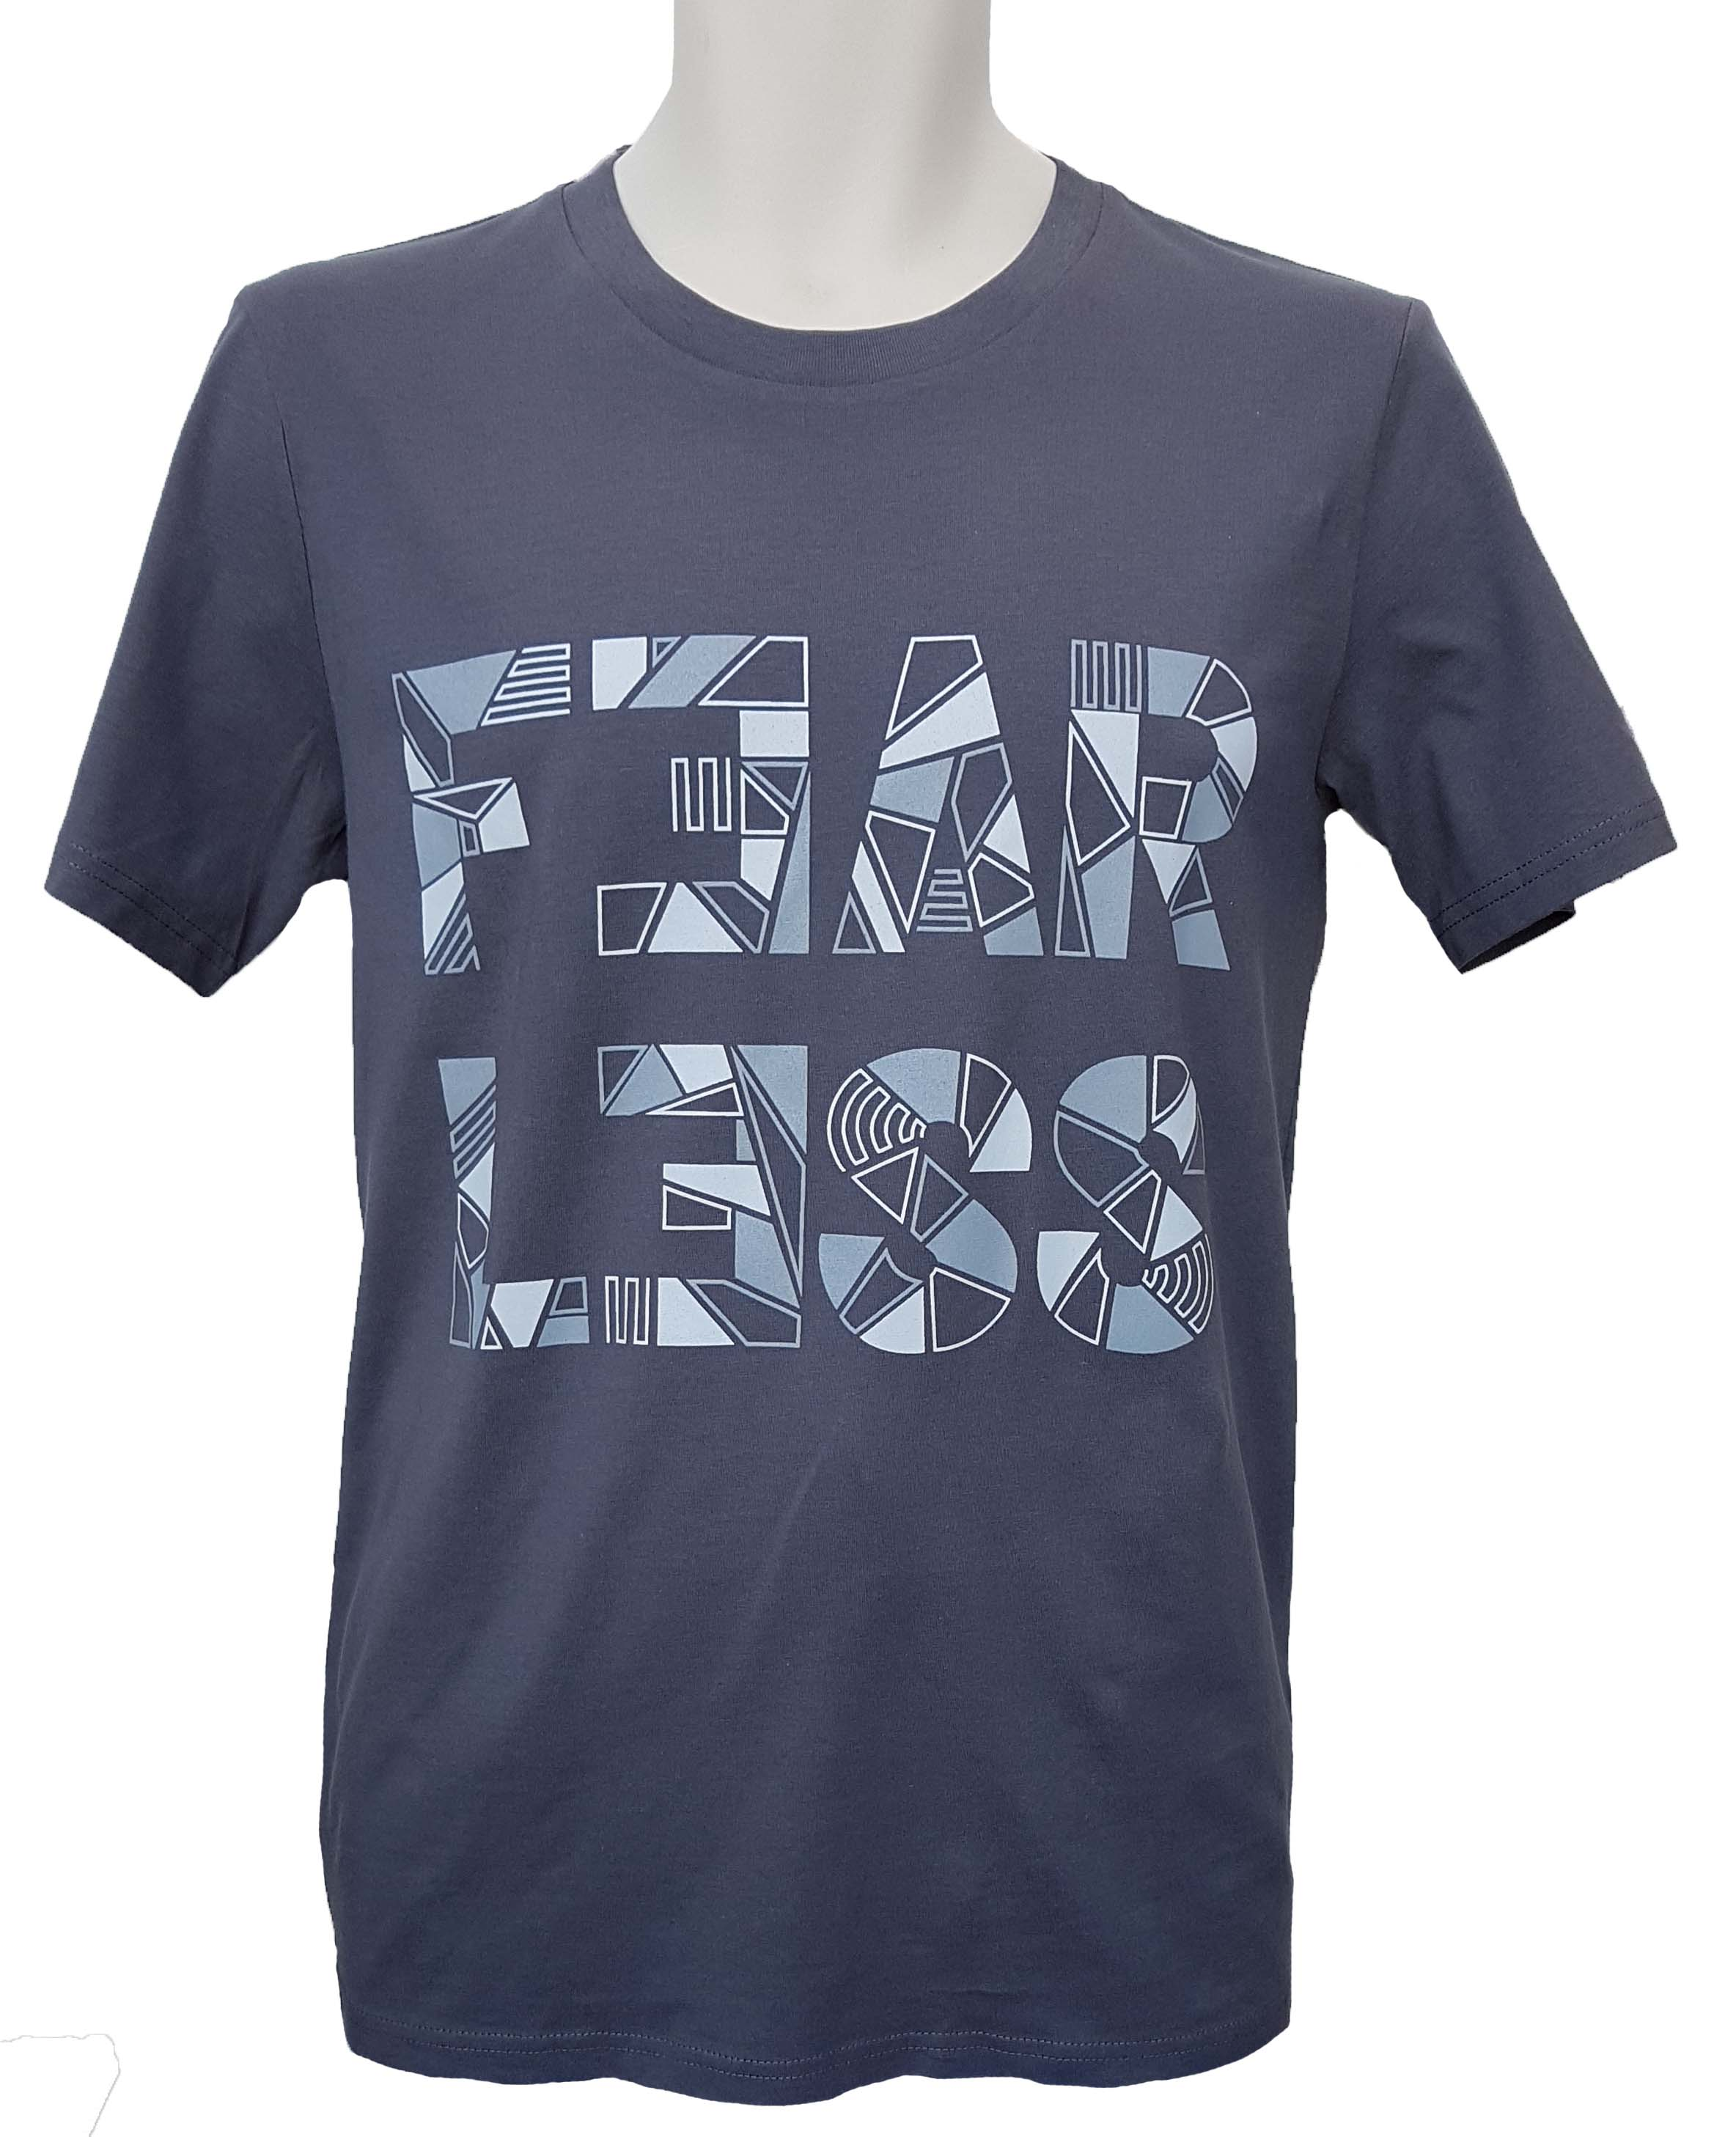 A picture of the new fearless t shirt